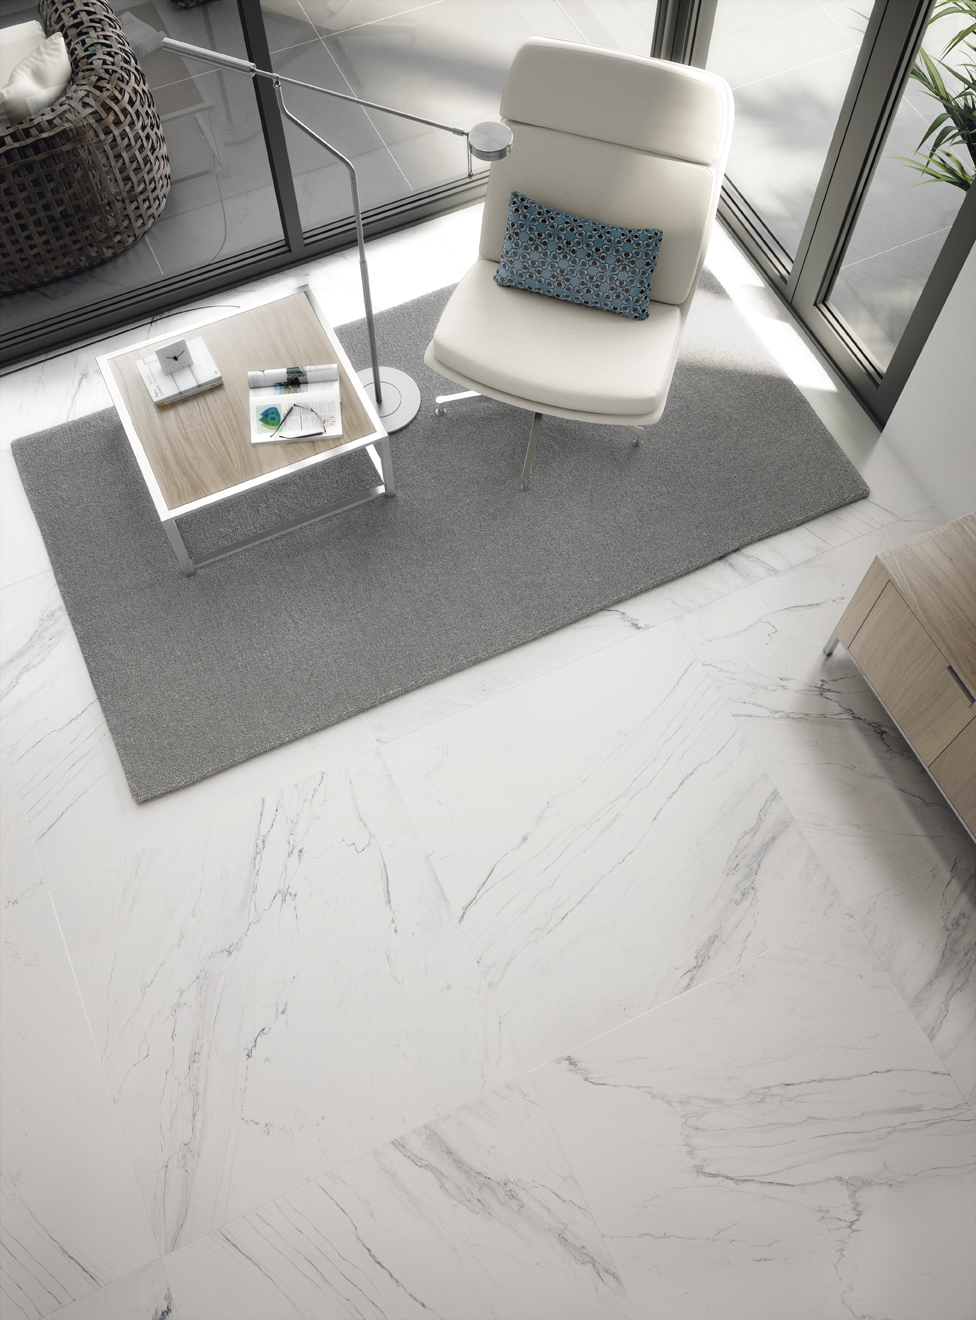 Touche Super Blanco-Gris Natural_1.jpg